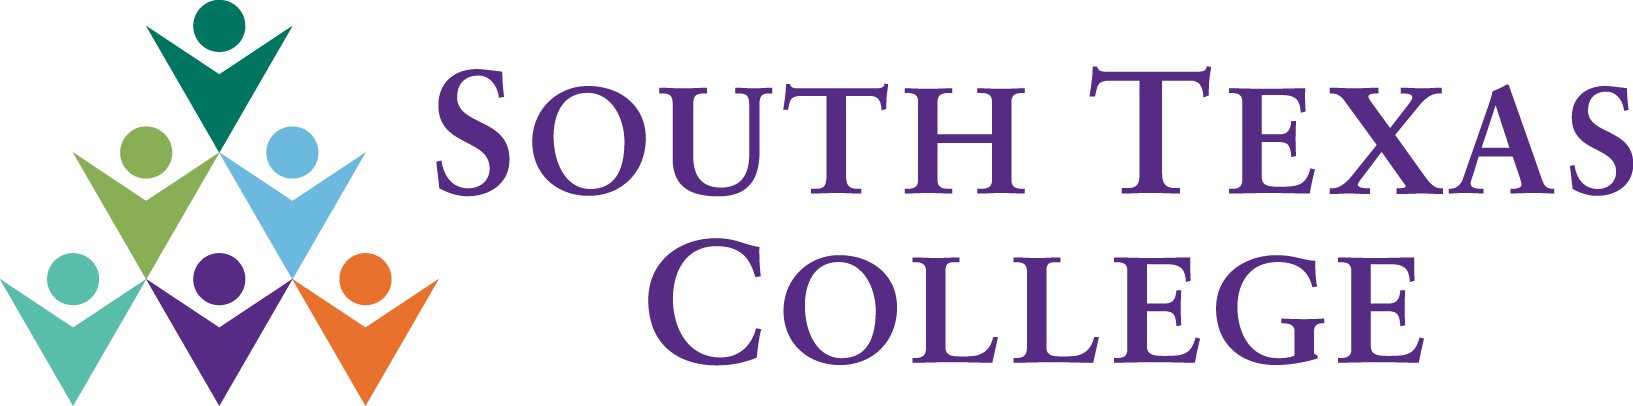 South Texas College - Human Resources MBA